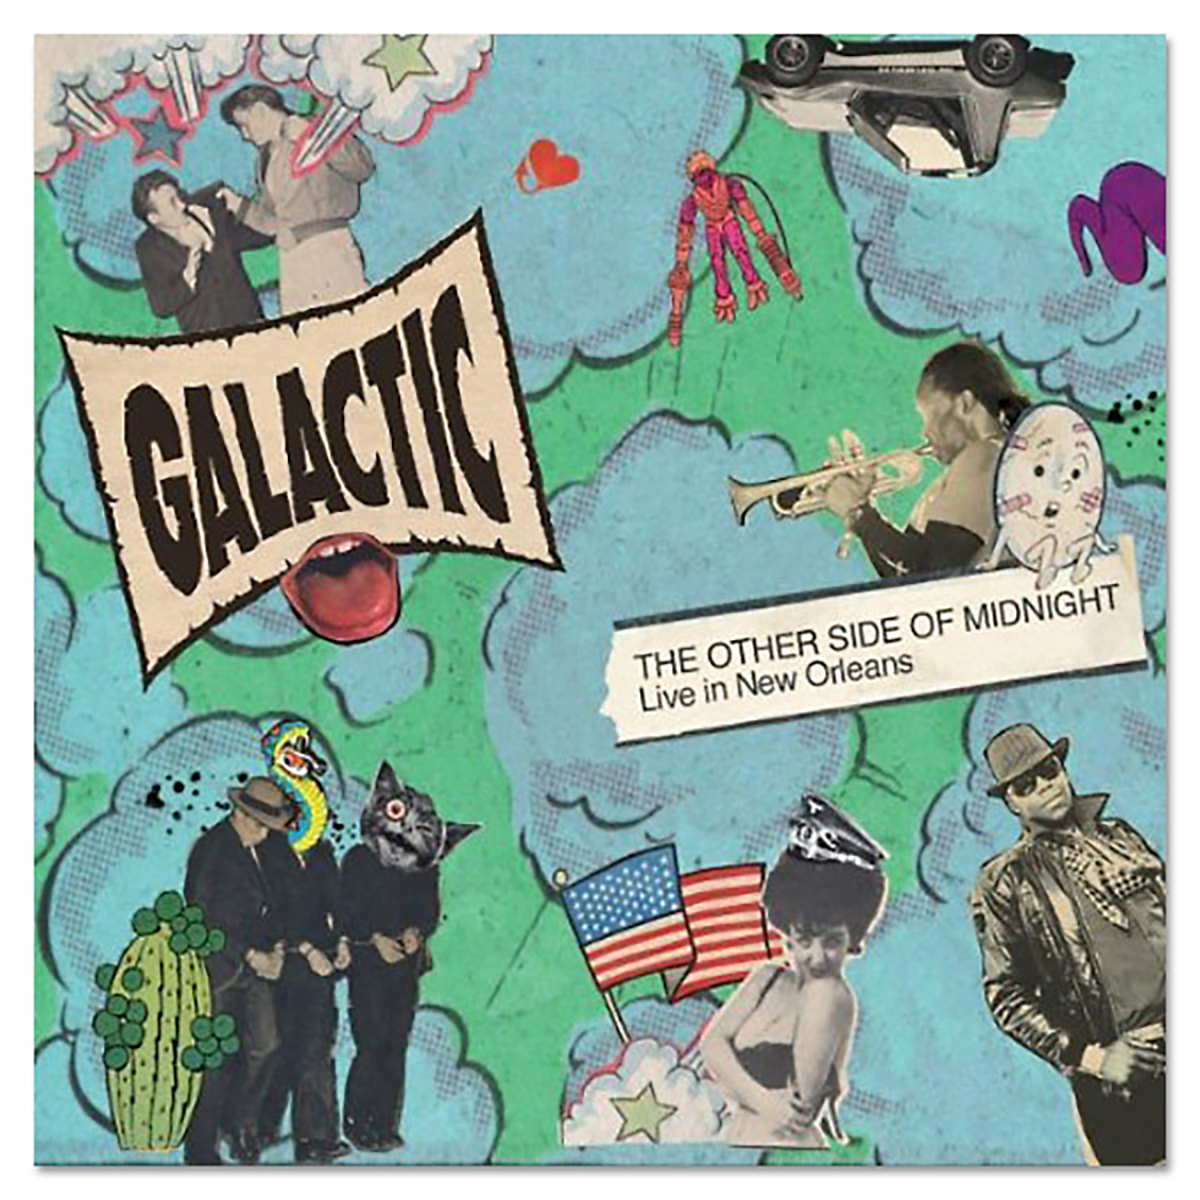 Galactic - Other Side of Midnight : Live in New Orleans CD